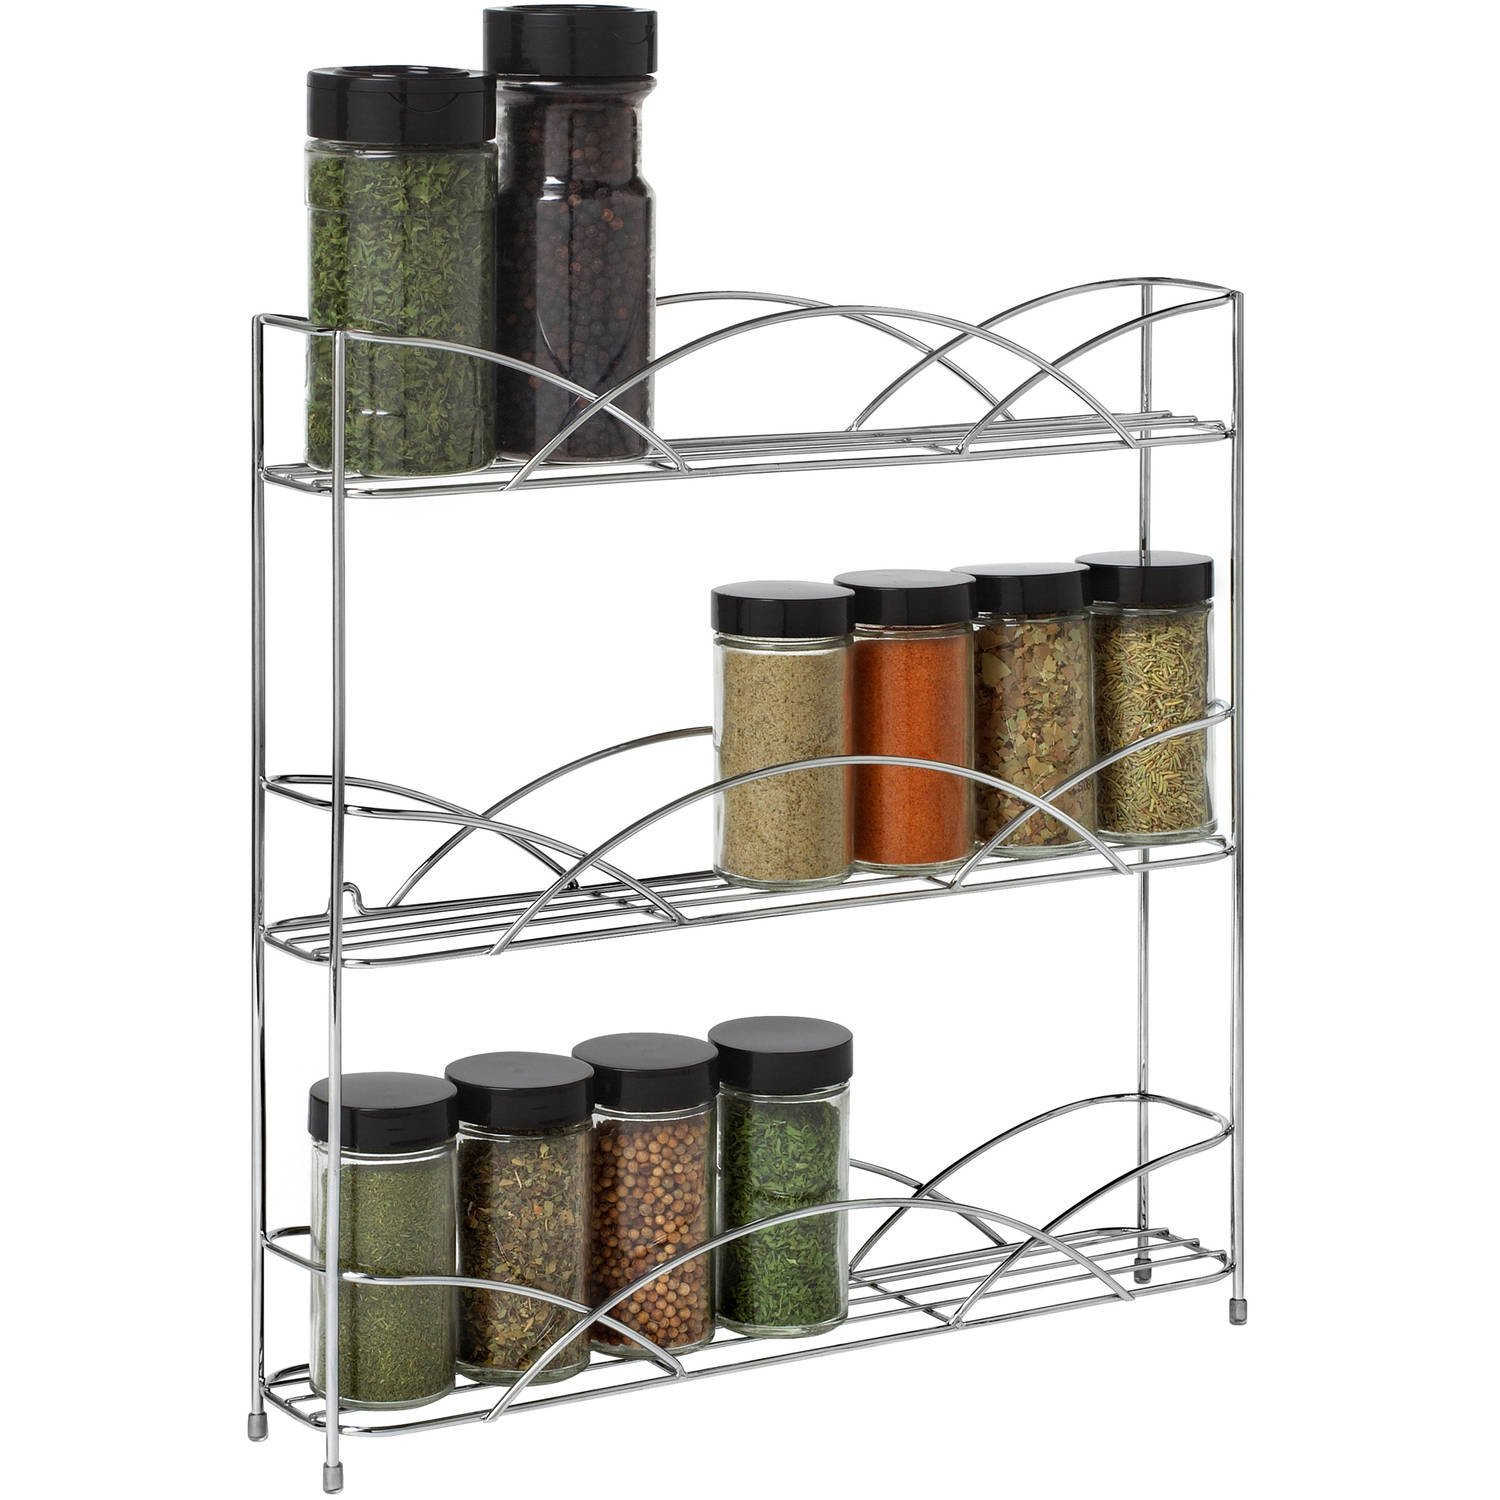 Spectrum Diversified Designs Countertop 3-Tier Spice Rack, Chrome